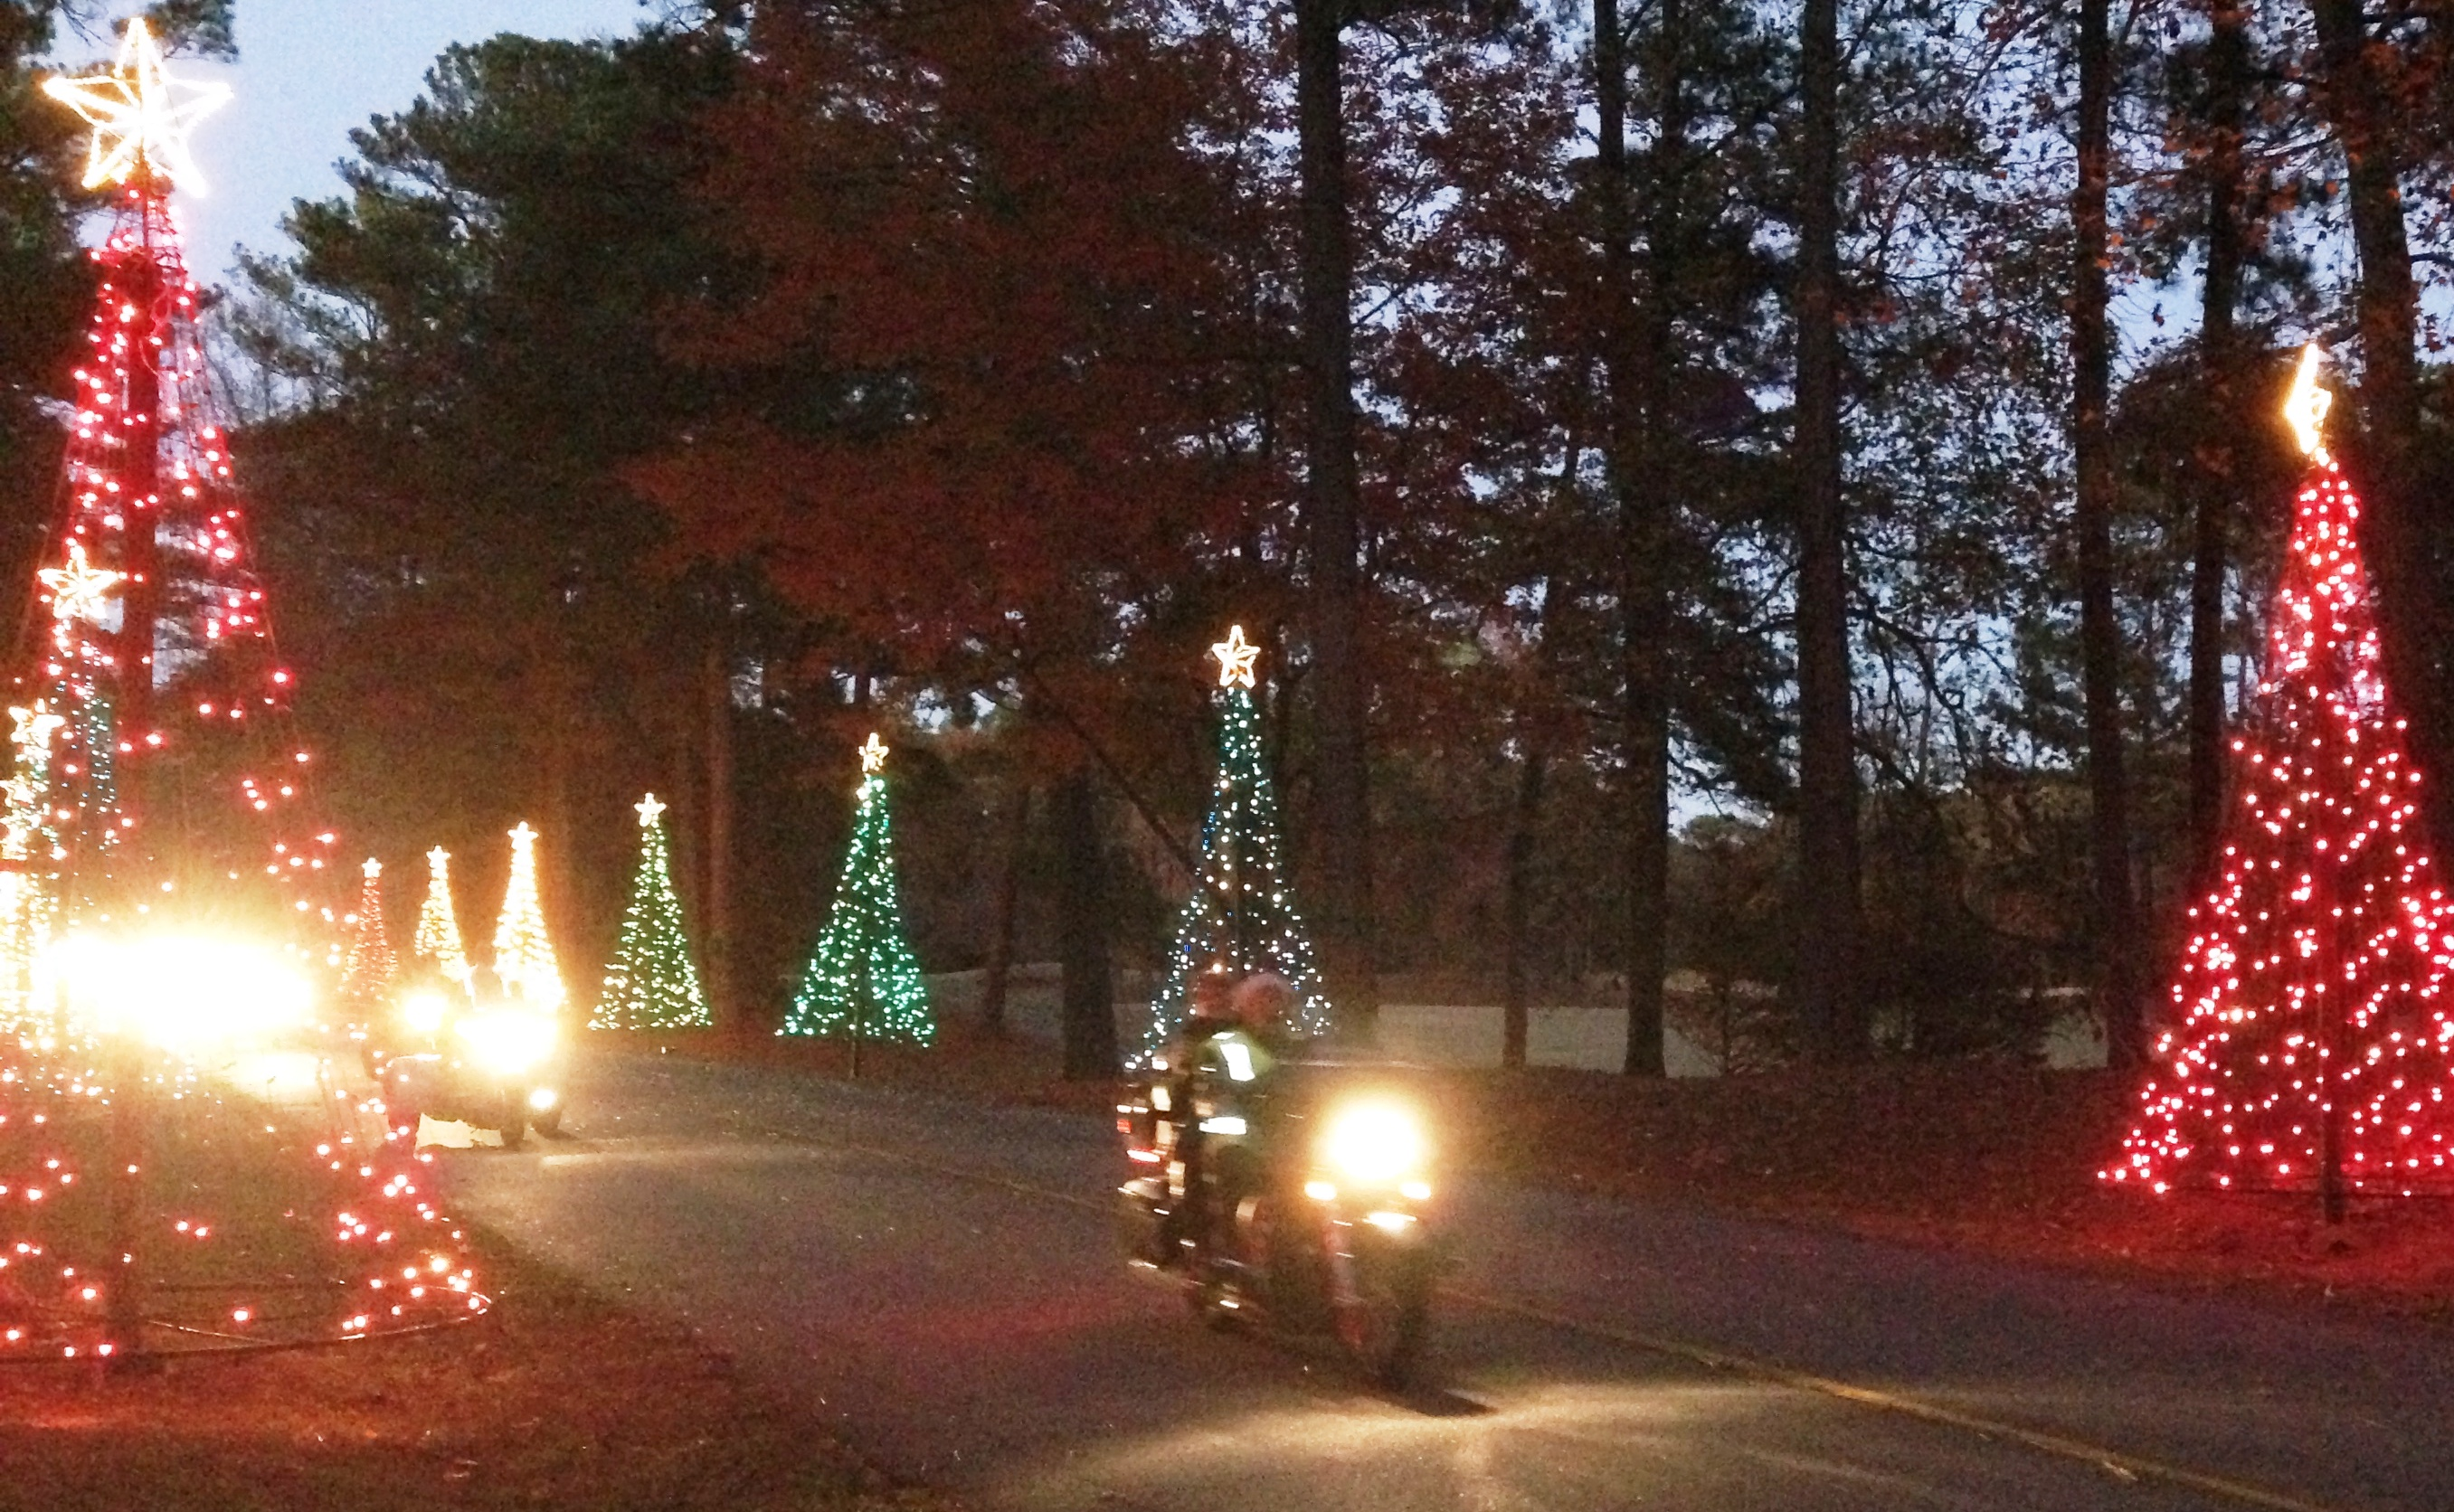 Tickets For Motorcycle Night At Callaway Gardens In Pine Mountain